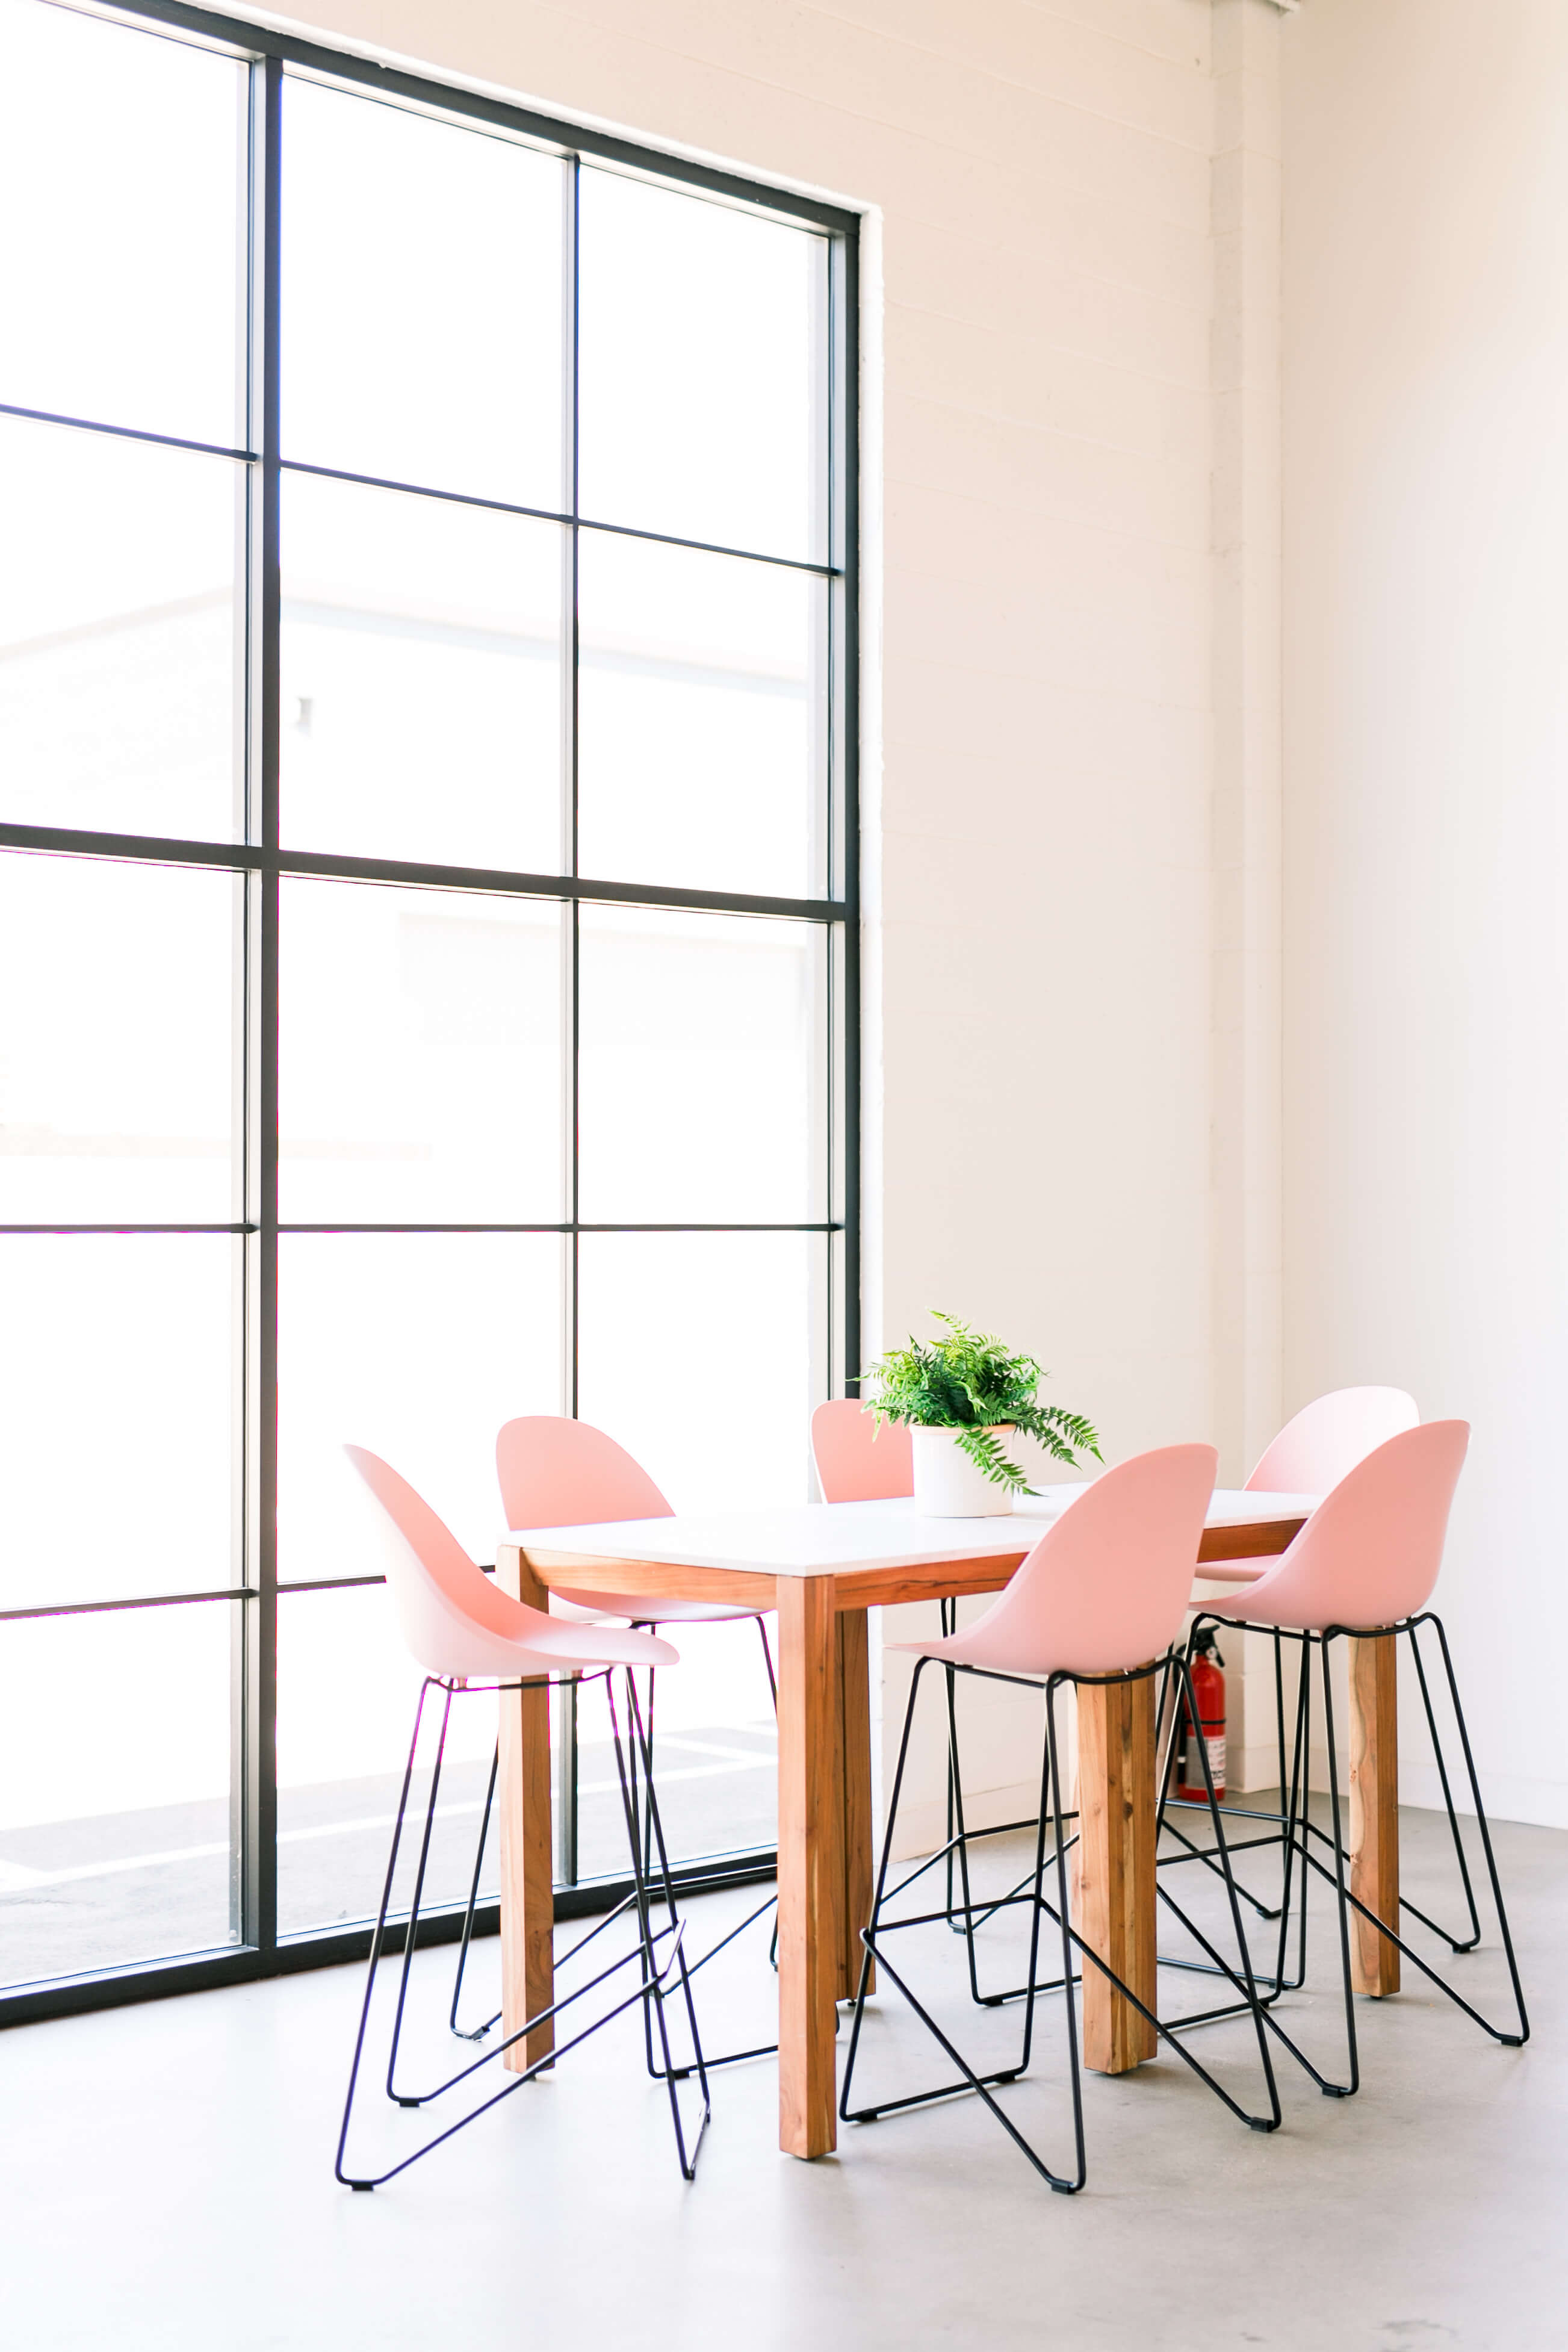 GINNY_MACDONALD_CREATE_CULTIVATE_PINK_COUNTER_CHAIRS